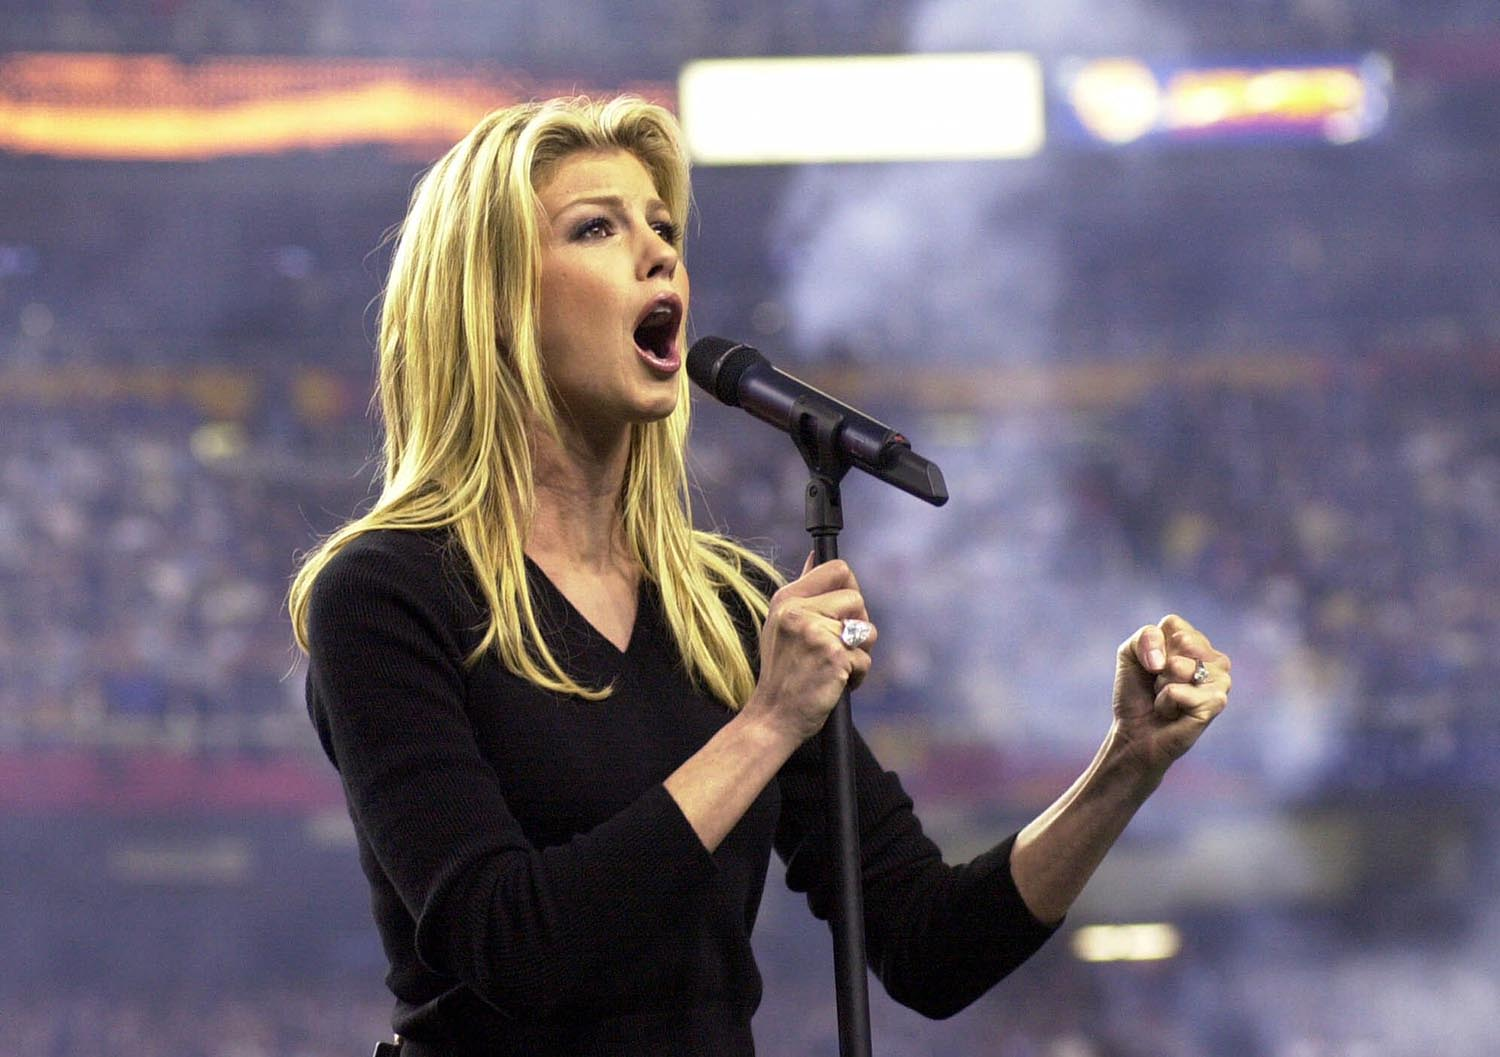 "<div class=""meta image-caption""><div class=""origin-logo origin-image ap""><span>AP</span></div><span class=""caption-text"">2000: Country singing star Faith Hill sings the national anthem before the start of Super Bowl XXXIV in Atlanta, Sunday Jan.30, 2000. (AP Photo/Dave Martin)</span></div>"